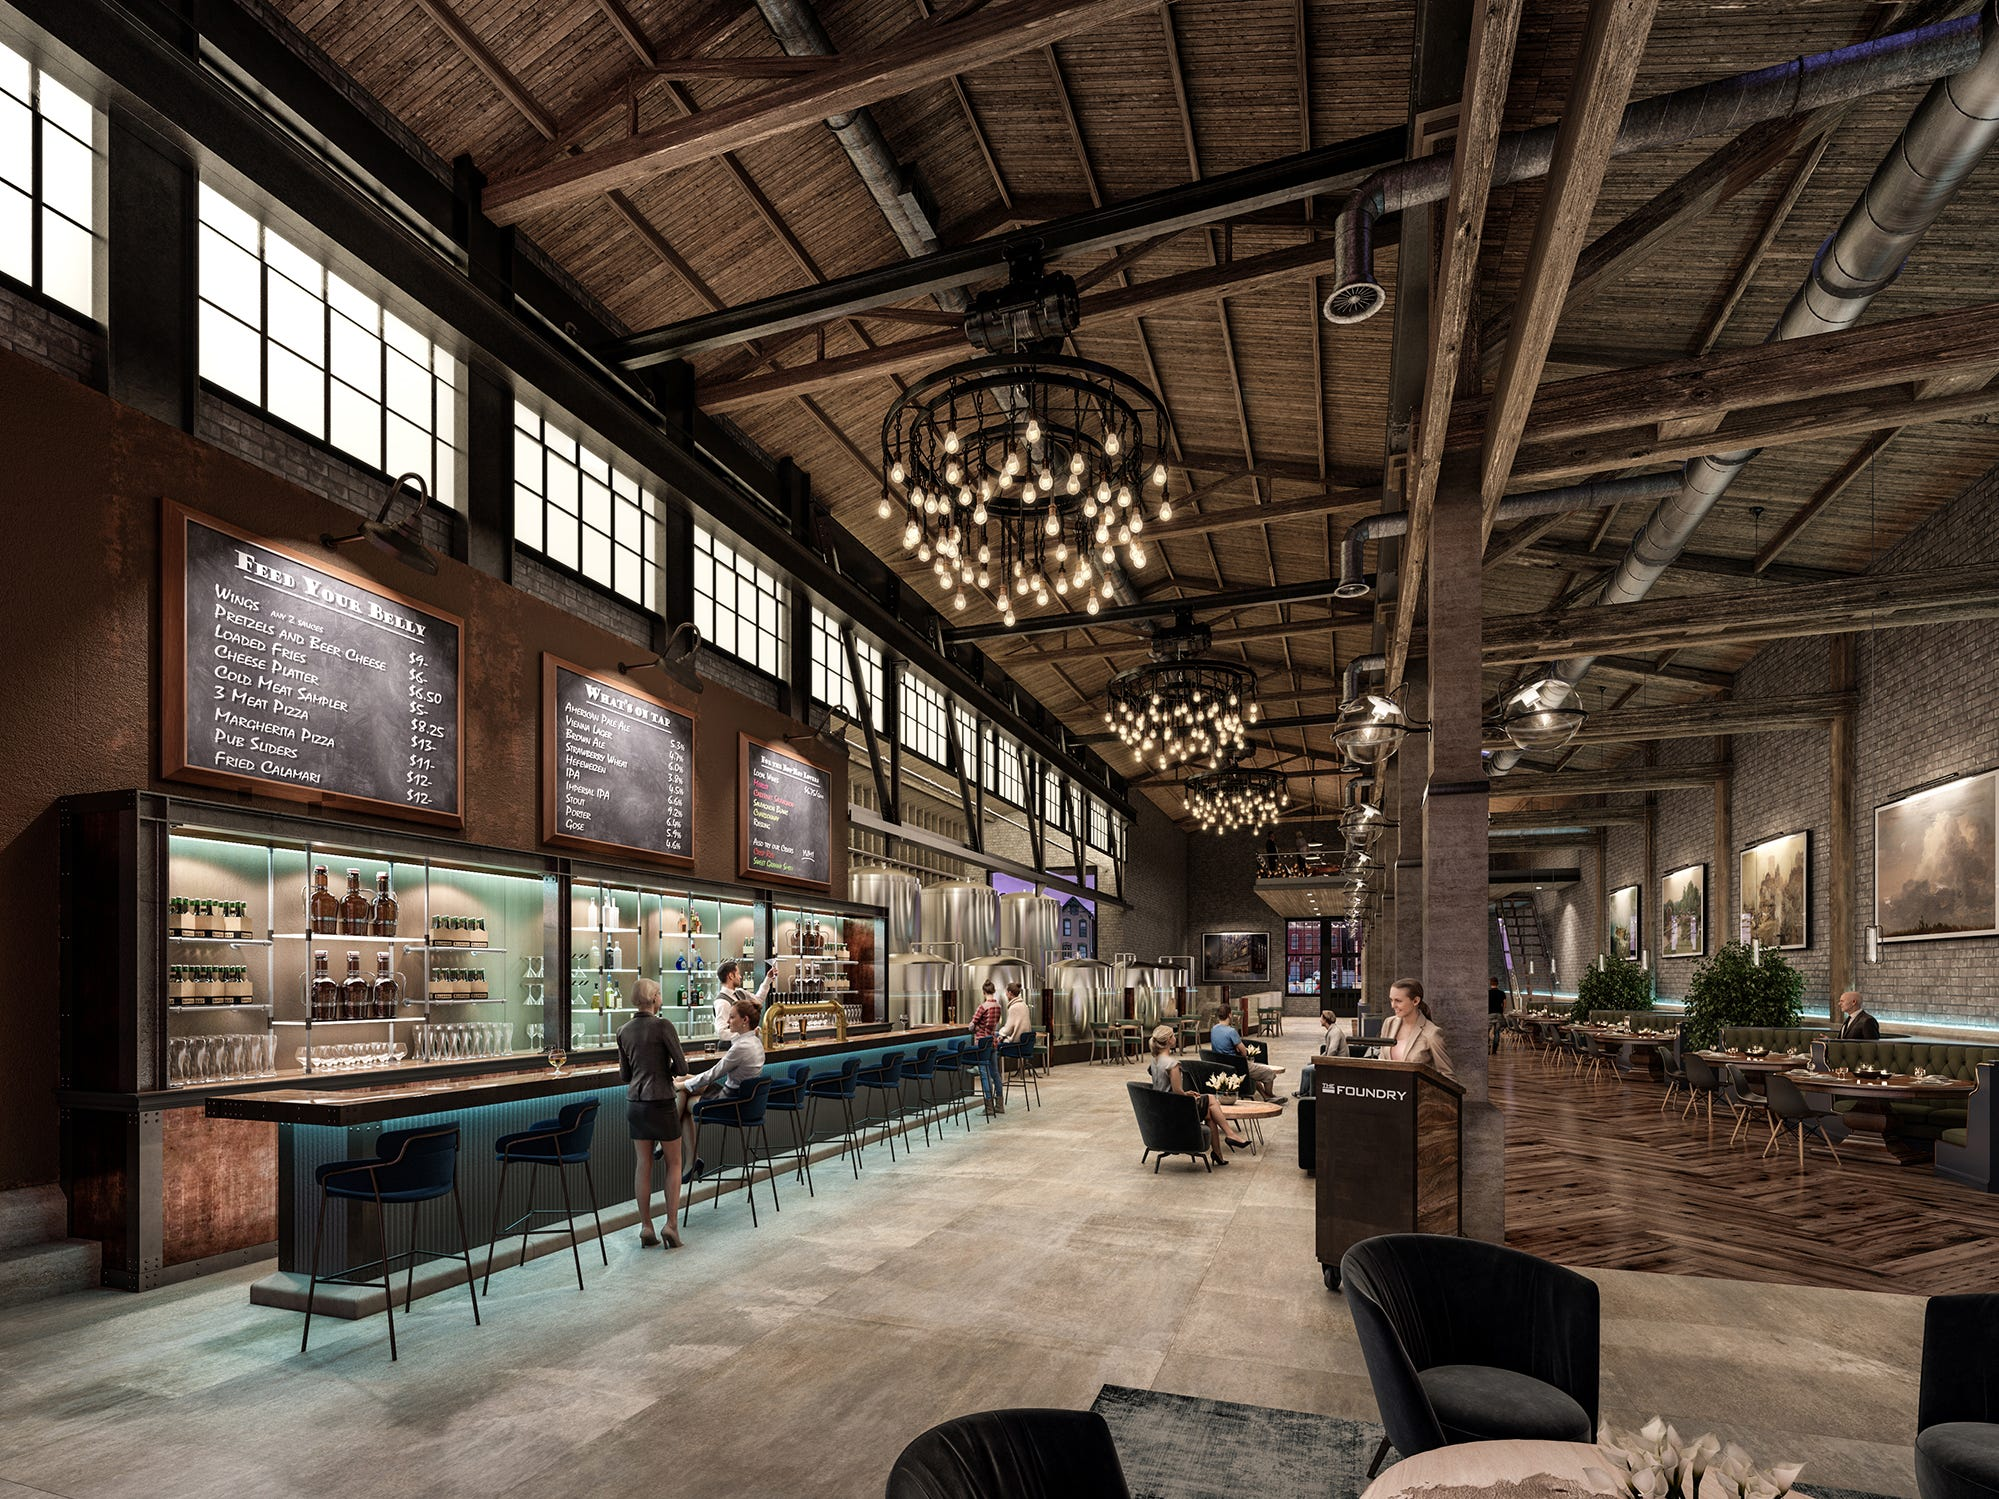 This is an artist's rendition of what the interior of the foundry building could look like.